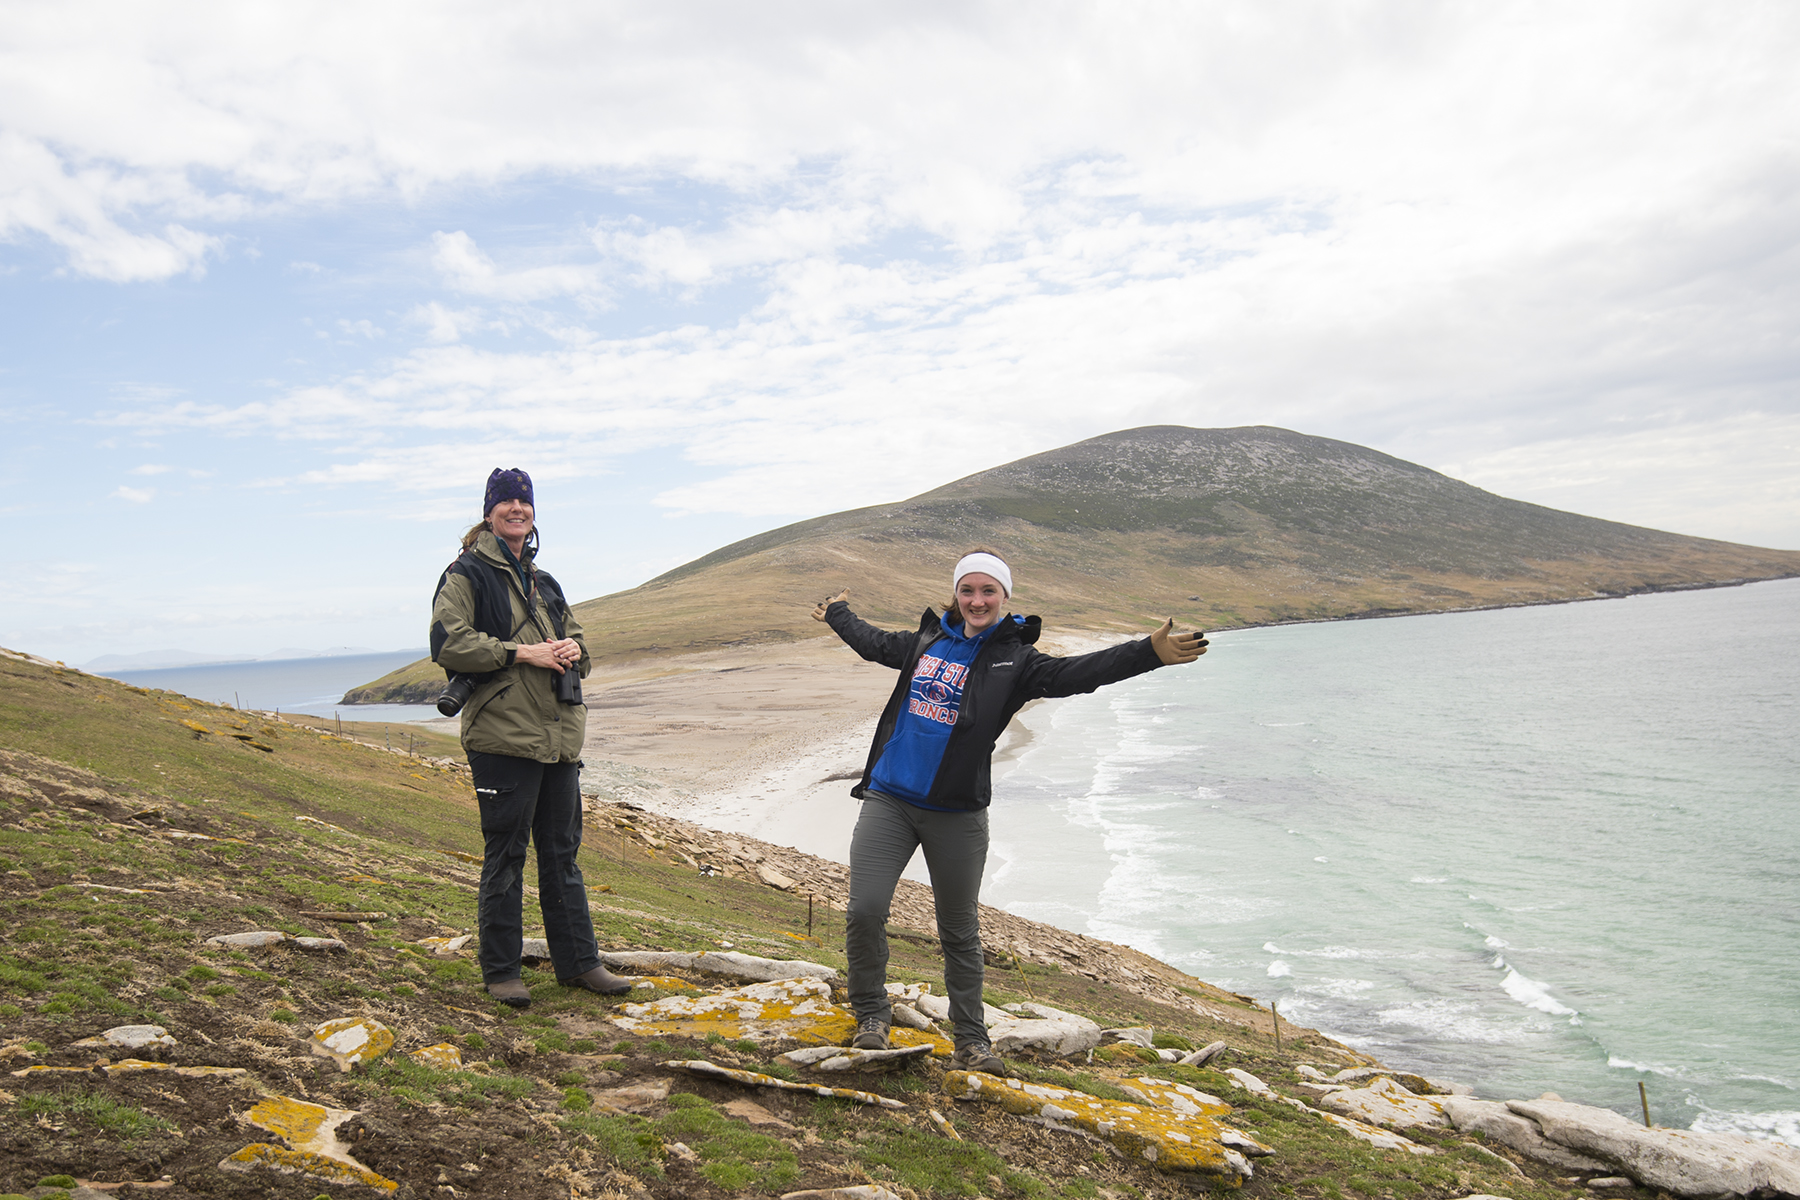 Biology students Gretel Care and Lauren Young, standing on Saunders Island,